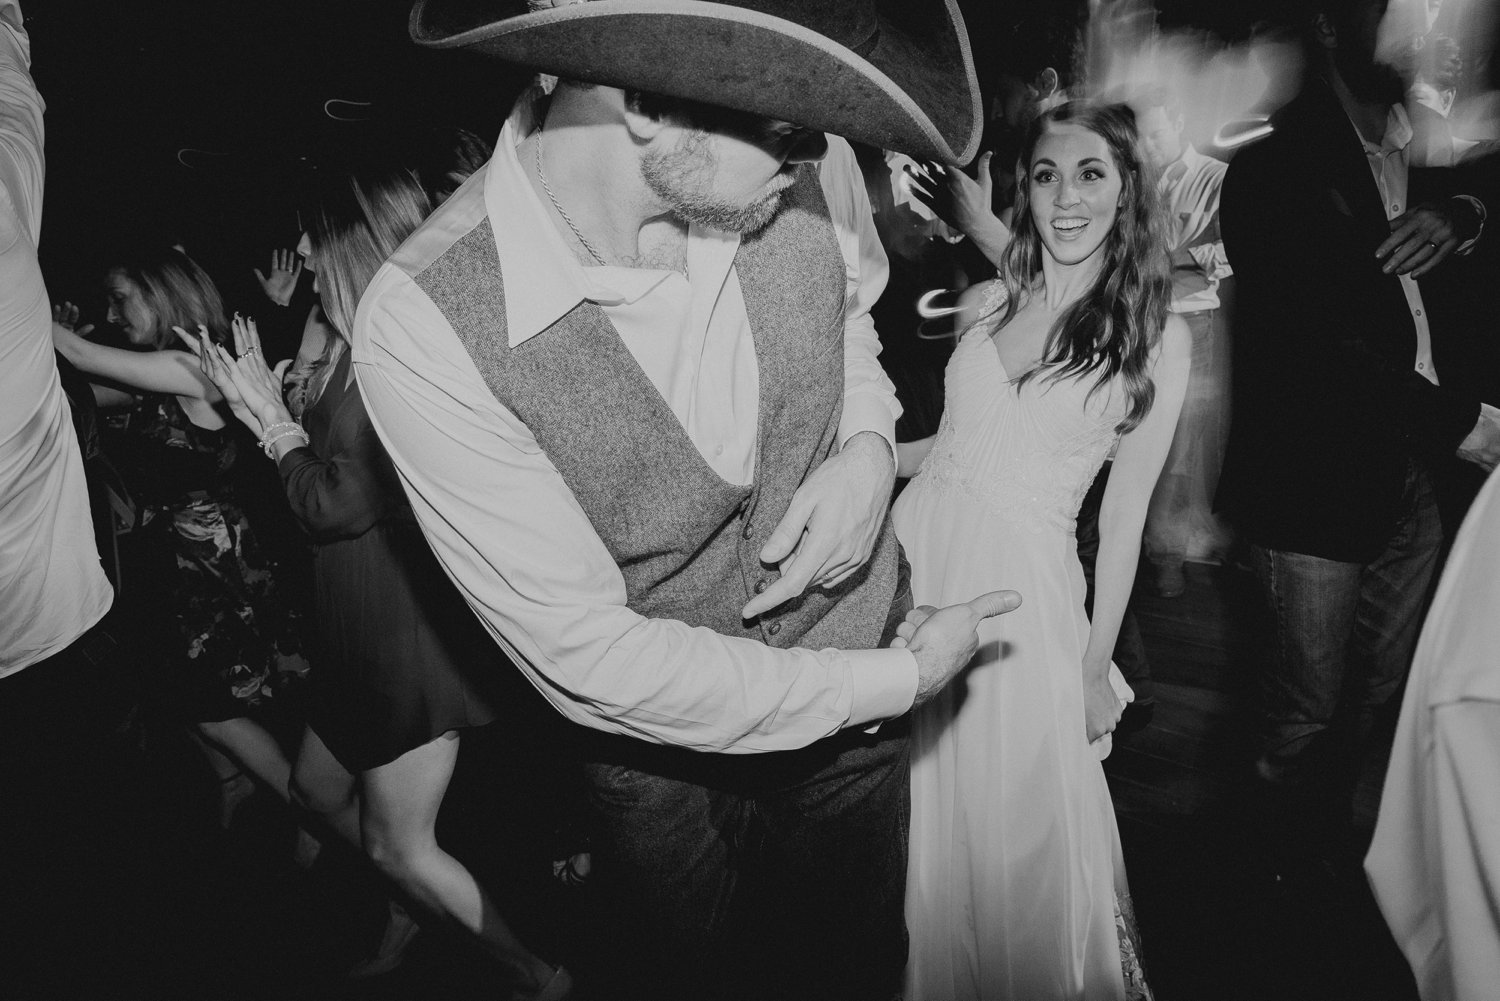 artistic wedding photographer dallas 115.jpg